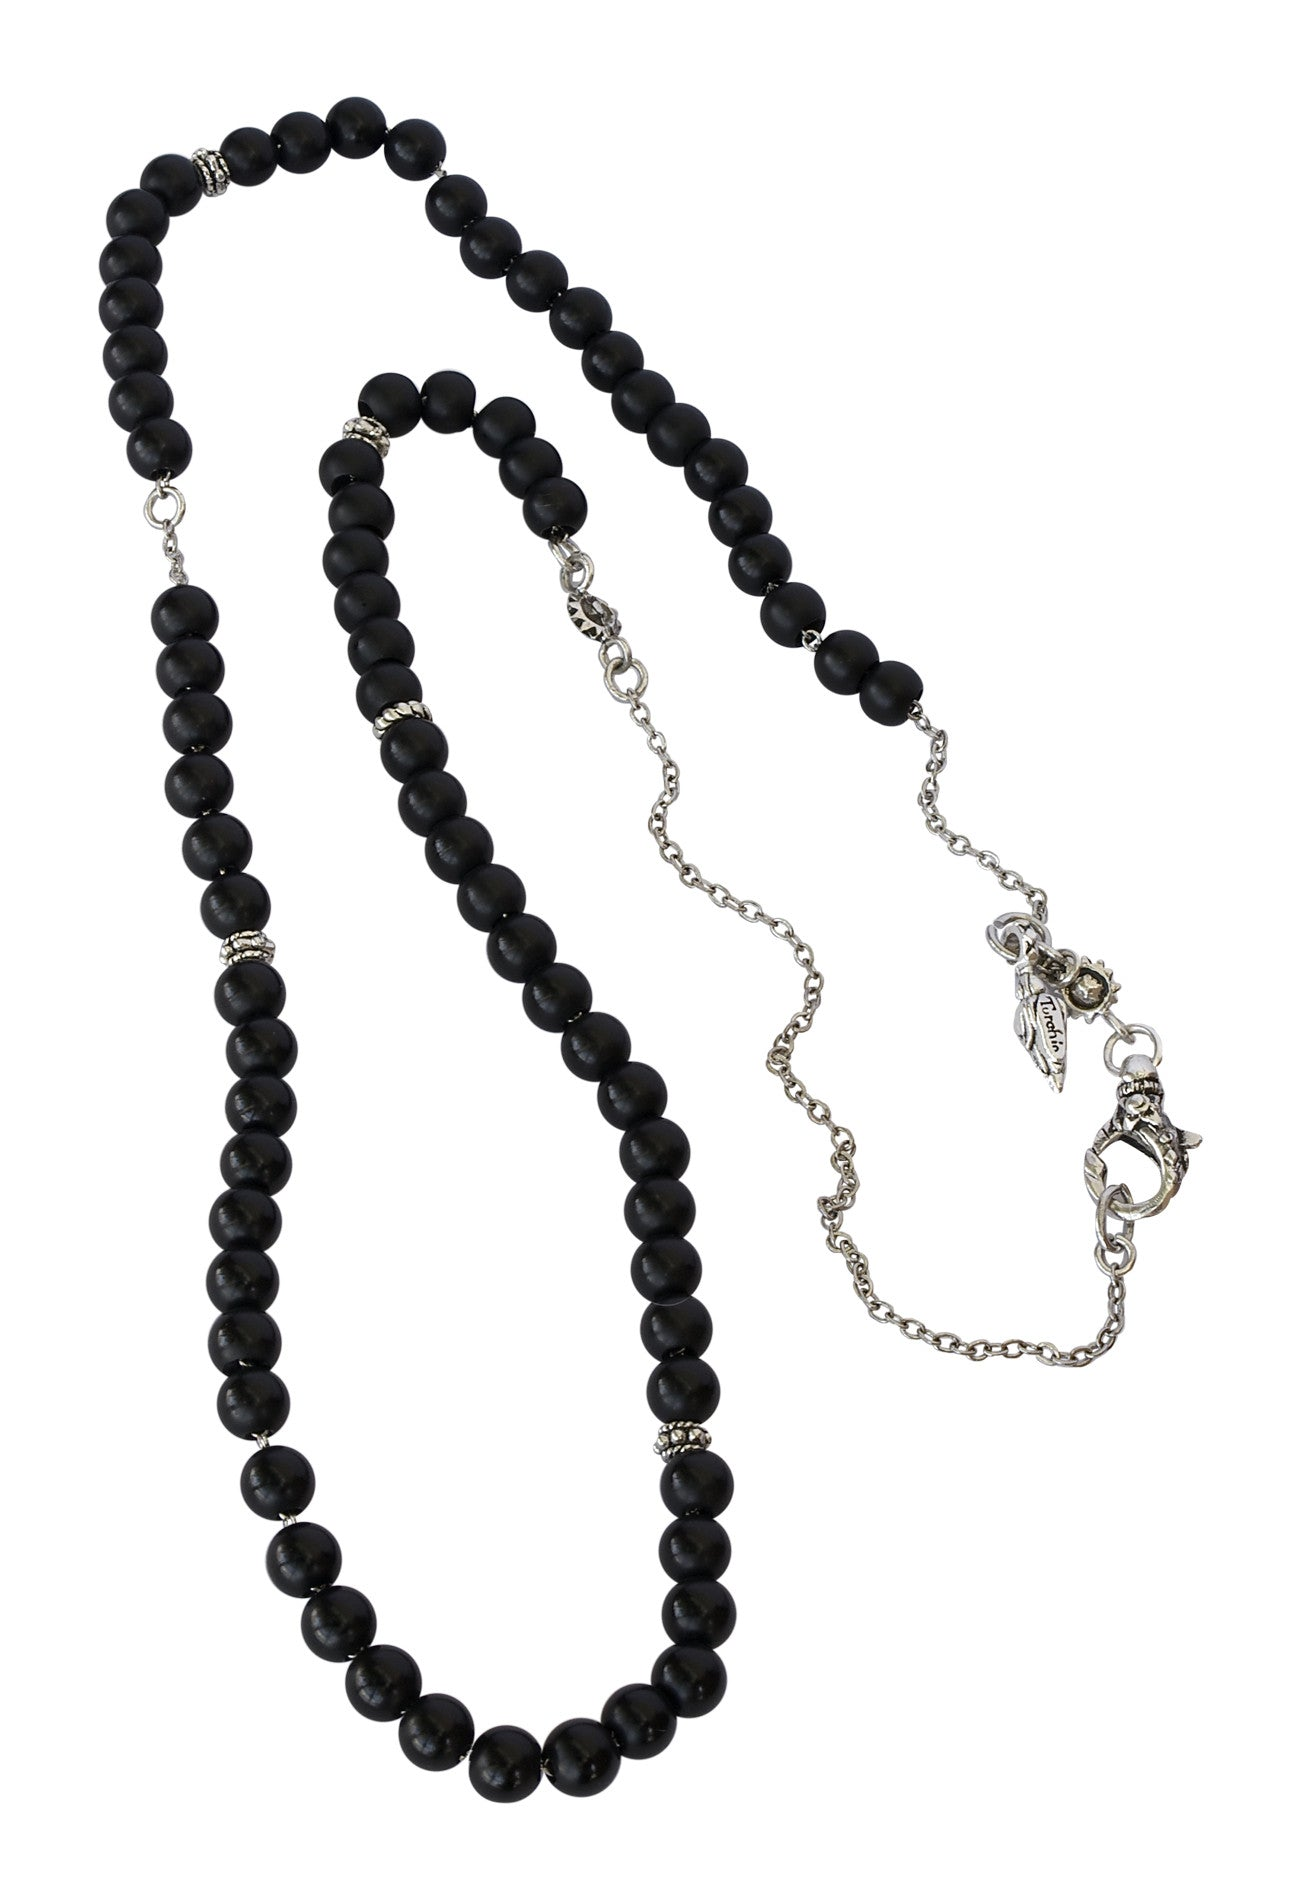 Matt Black Onyx And Silver Chain Necklace